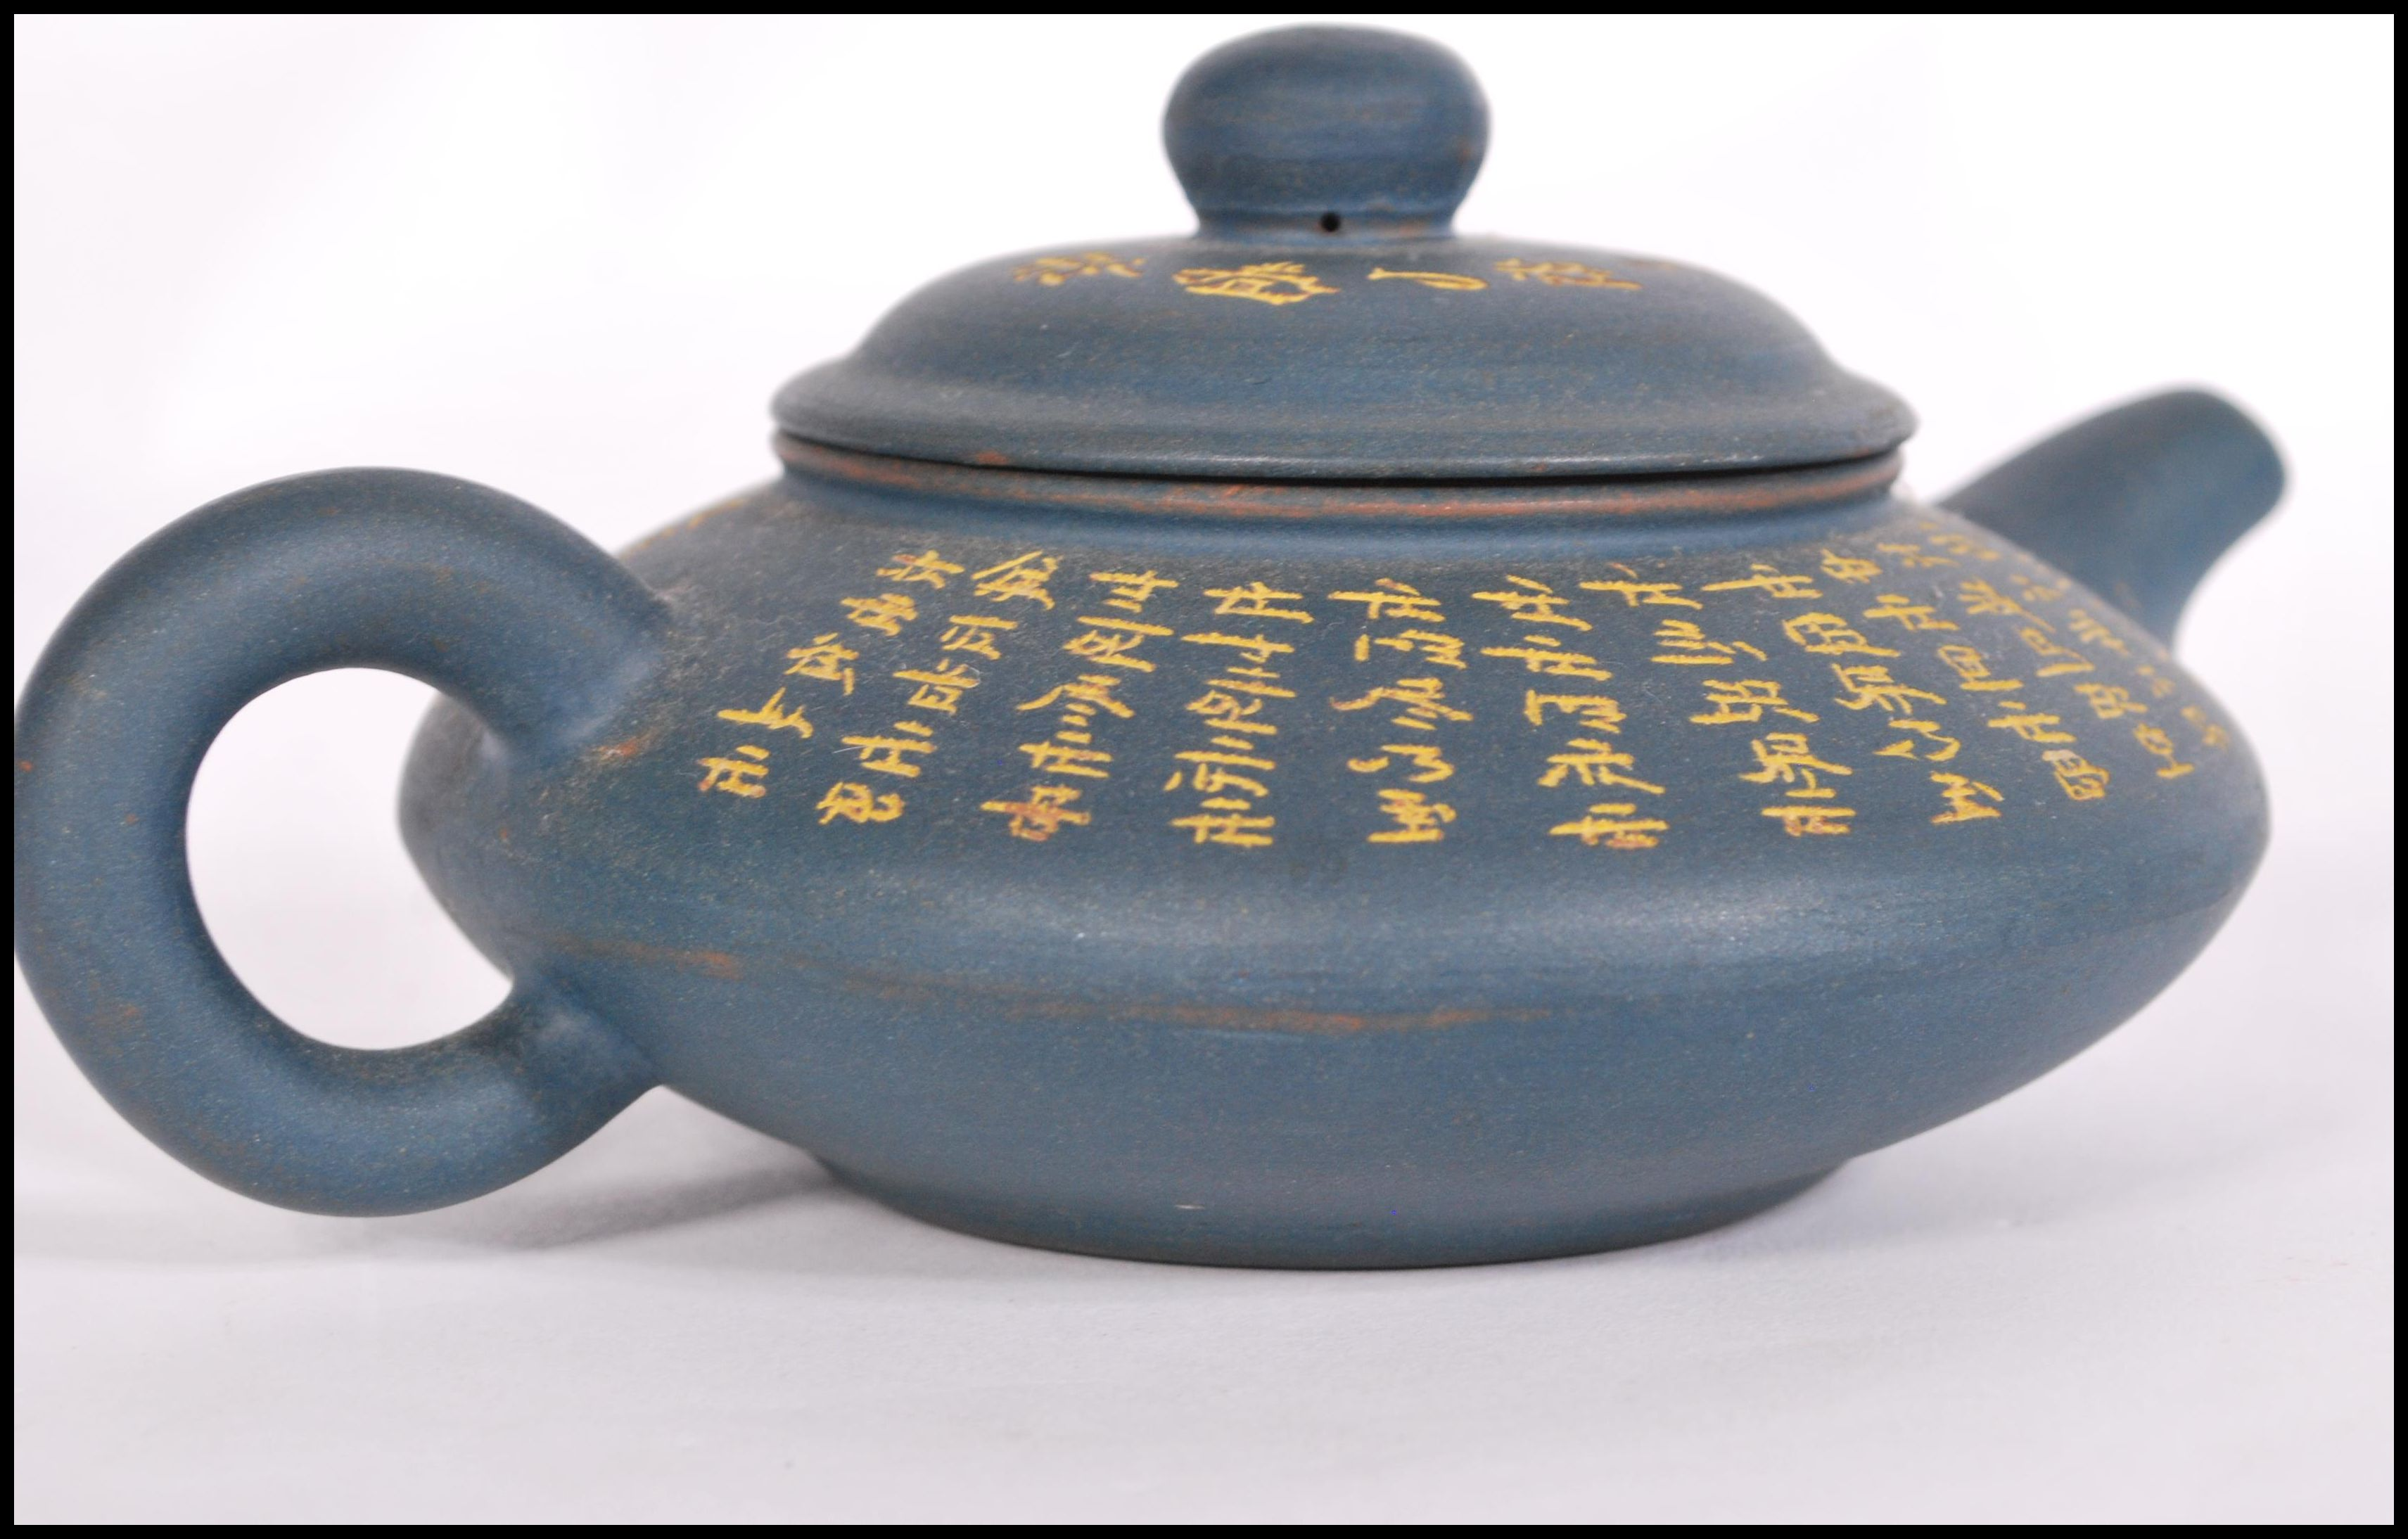 Lot 44 - A Chinese Yi Xing teapot having a blue pottery ground with gilt Buddhist Scriptures and